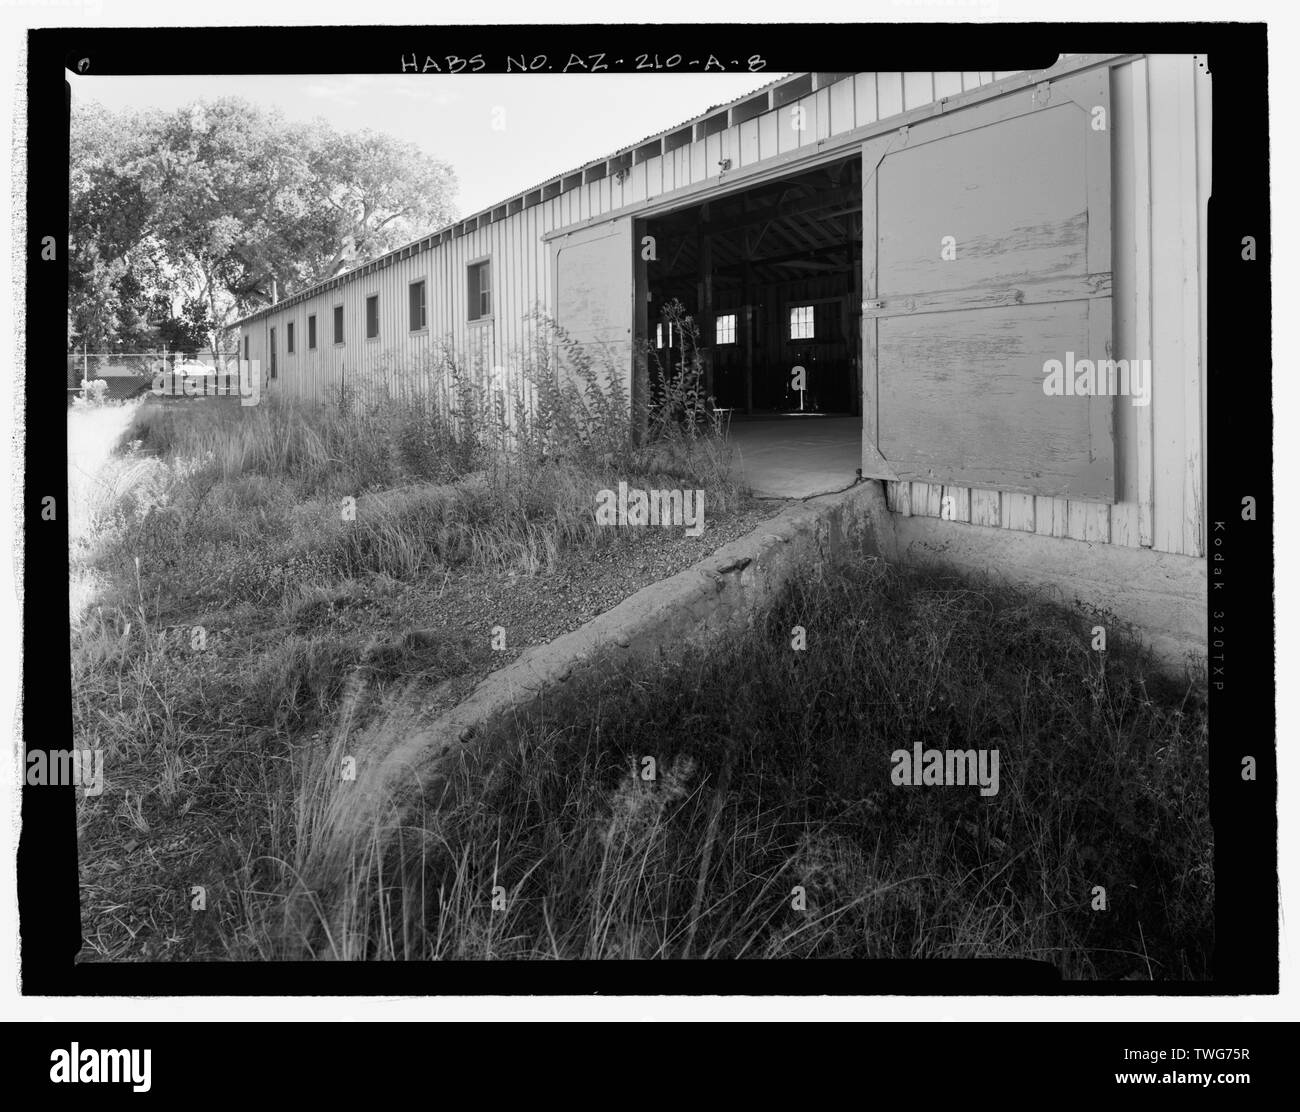 RAMP AND SLIDING DOOR ON NORTH SIDE, FROM NORTHWEST - Fort Huachuca, Cavalry Stable, Clarkson Road, Sierra Vista, Cochise County, AZ - Stock Image